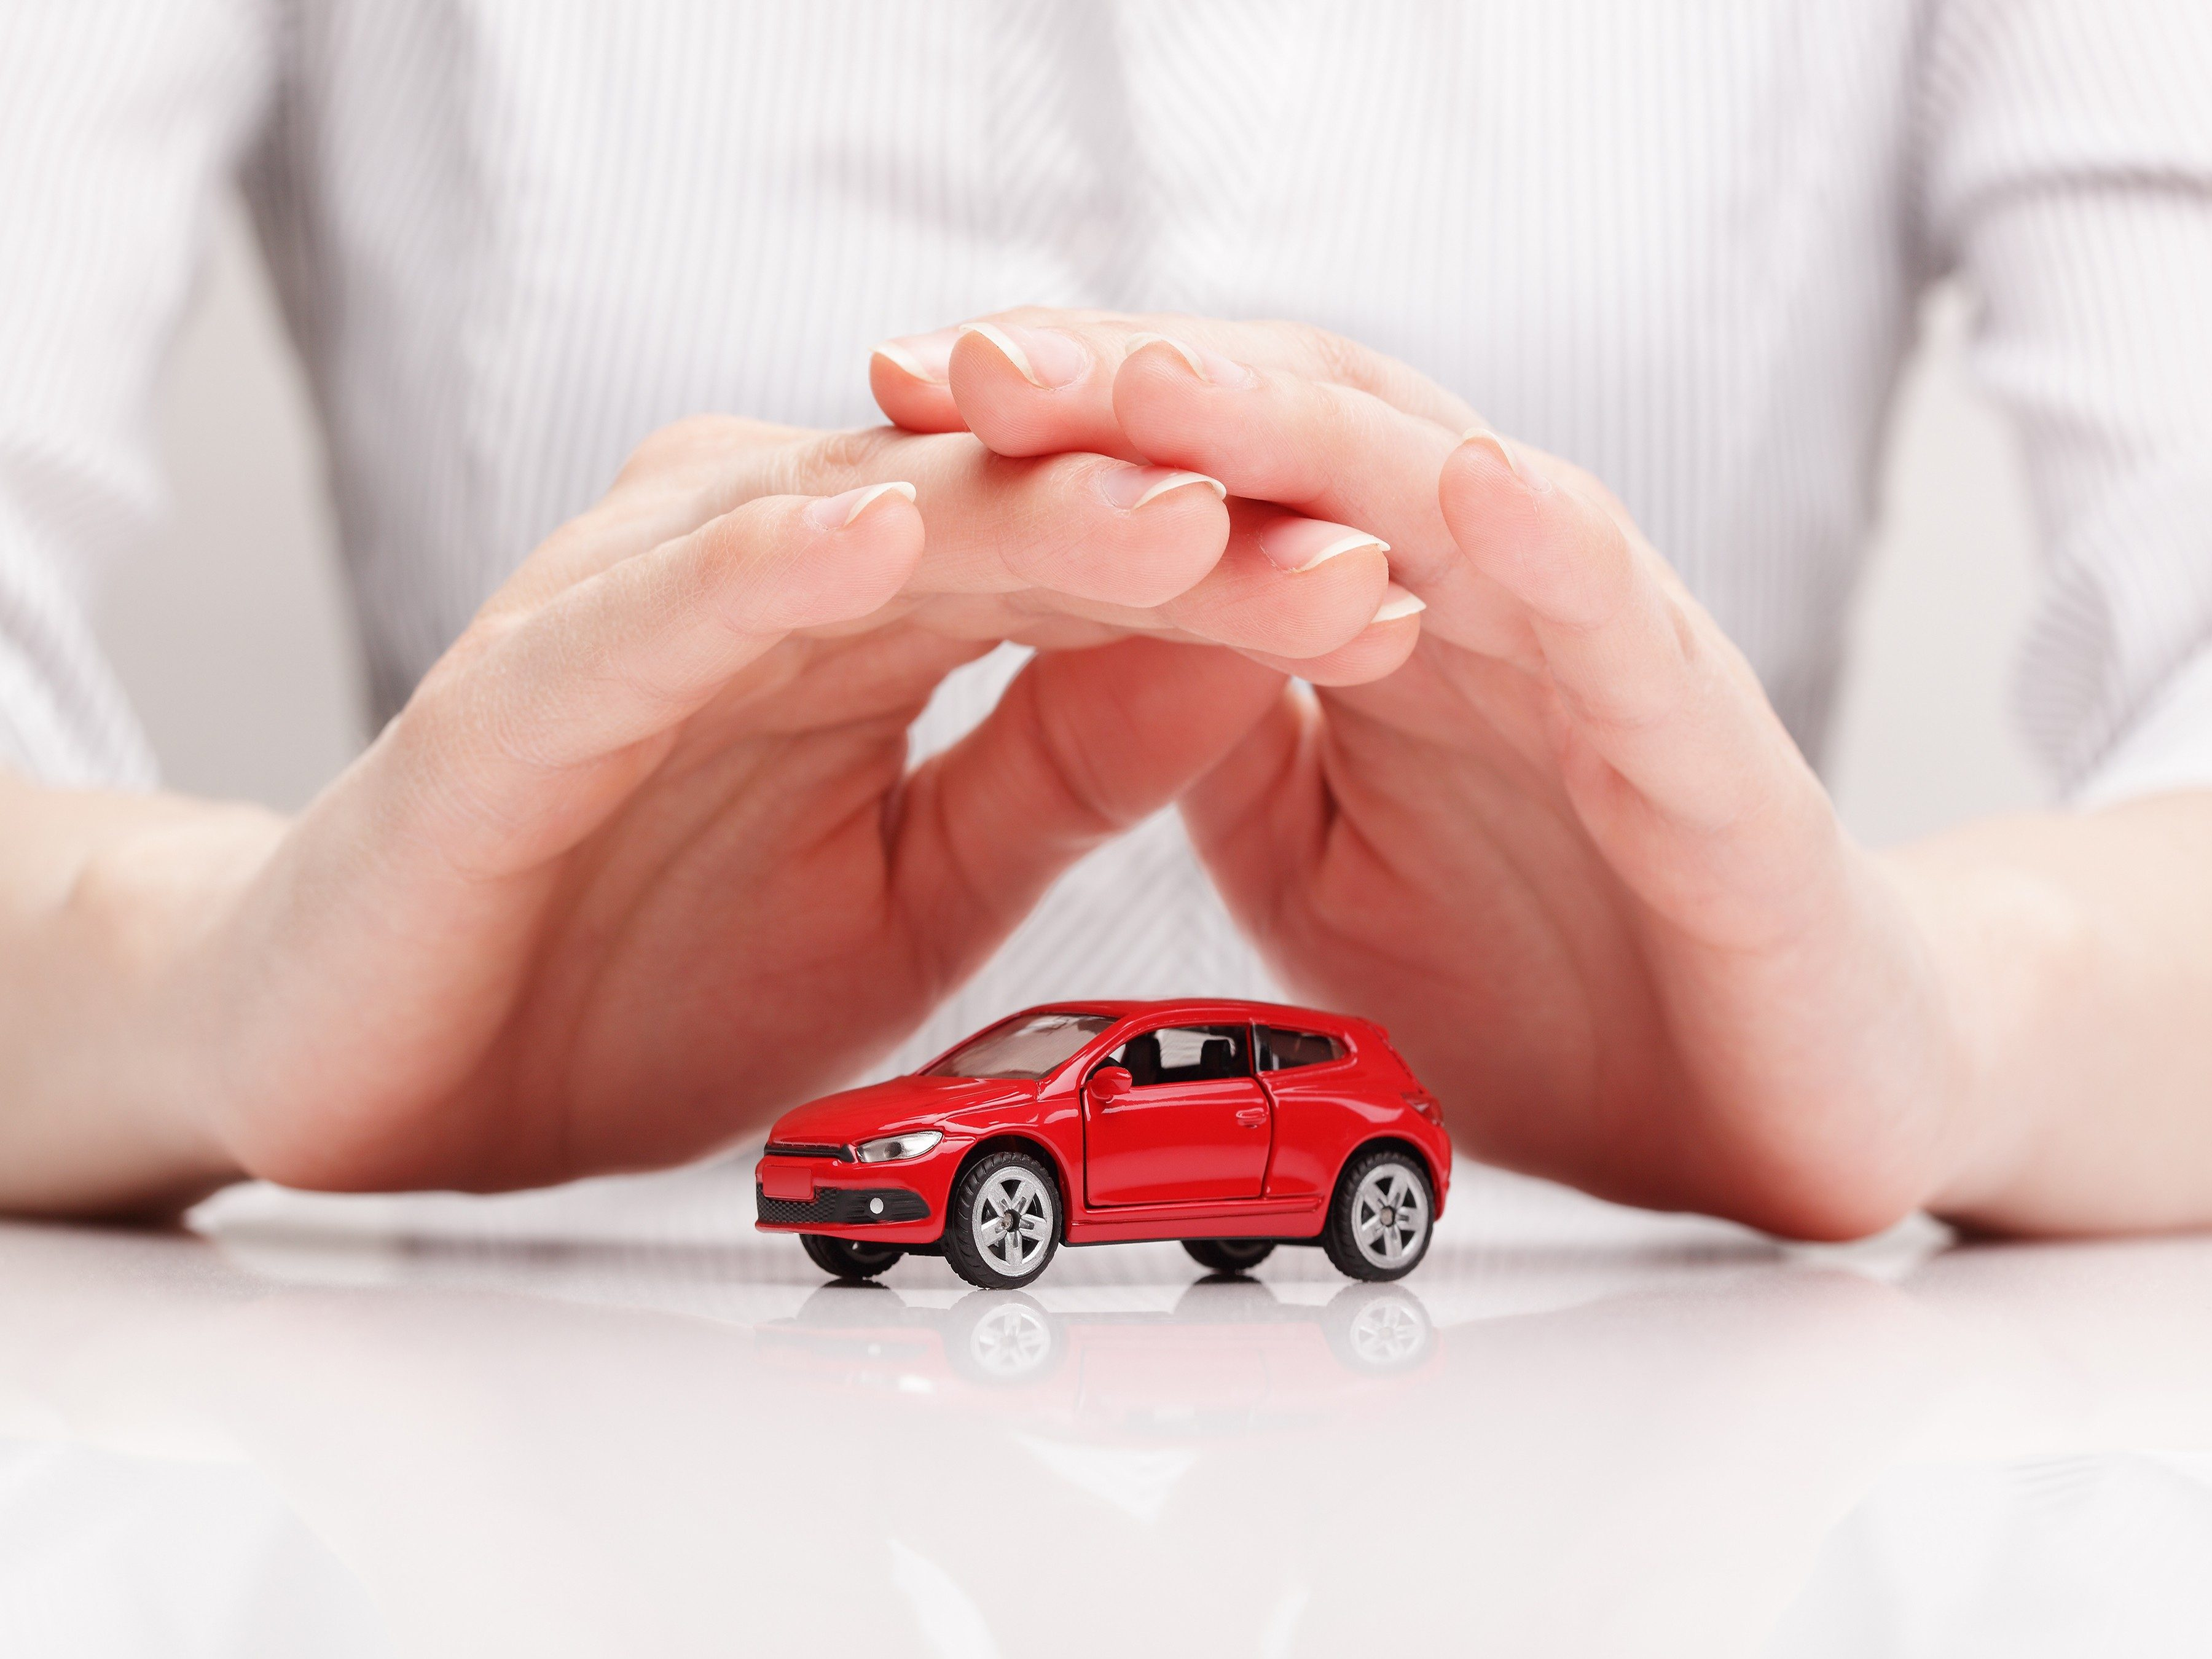 4. Minimum car insurance coverage may not be enough.